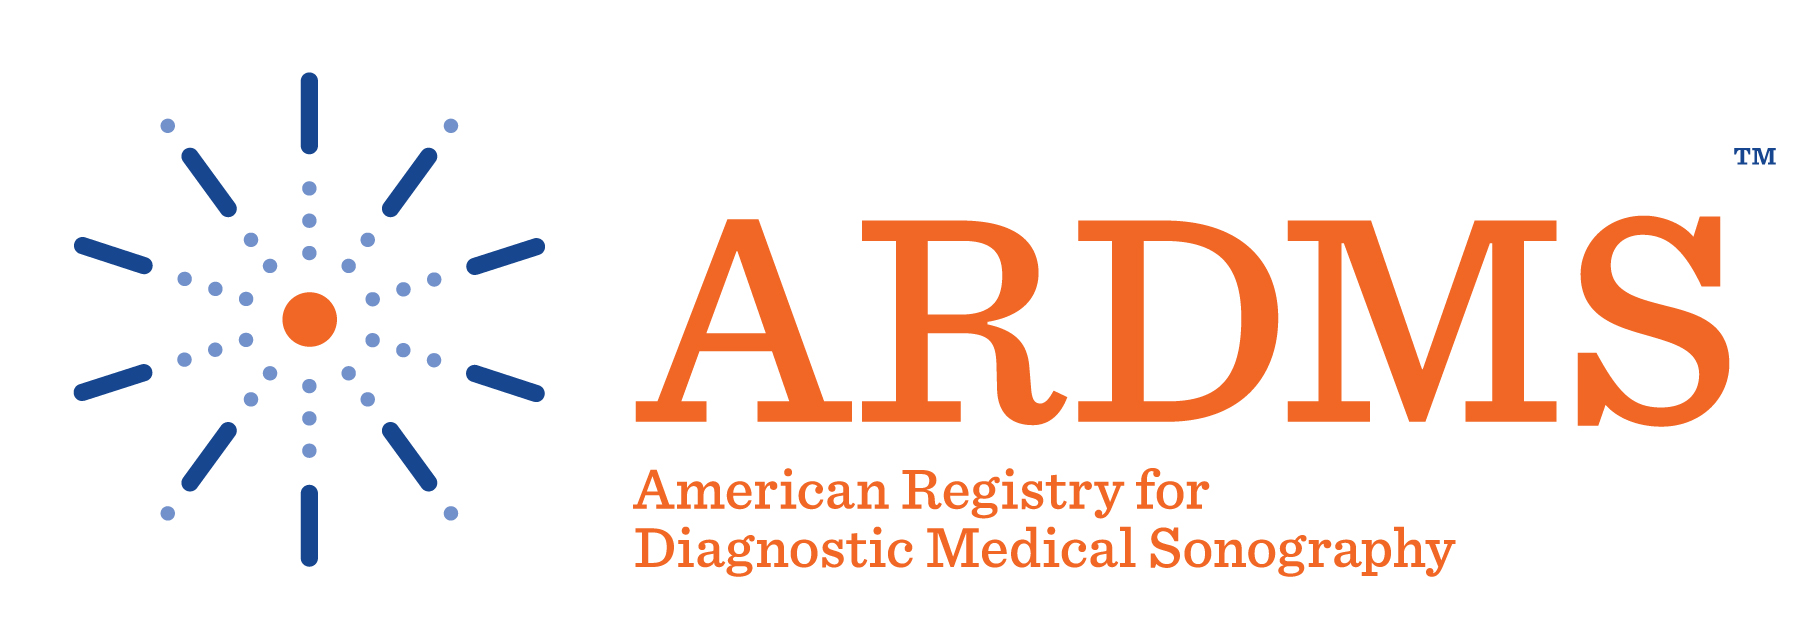 Introducing The New Ardms Logo